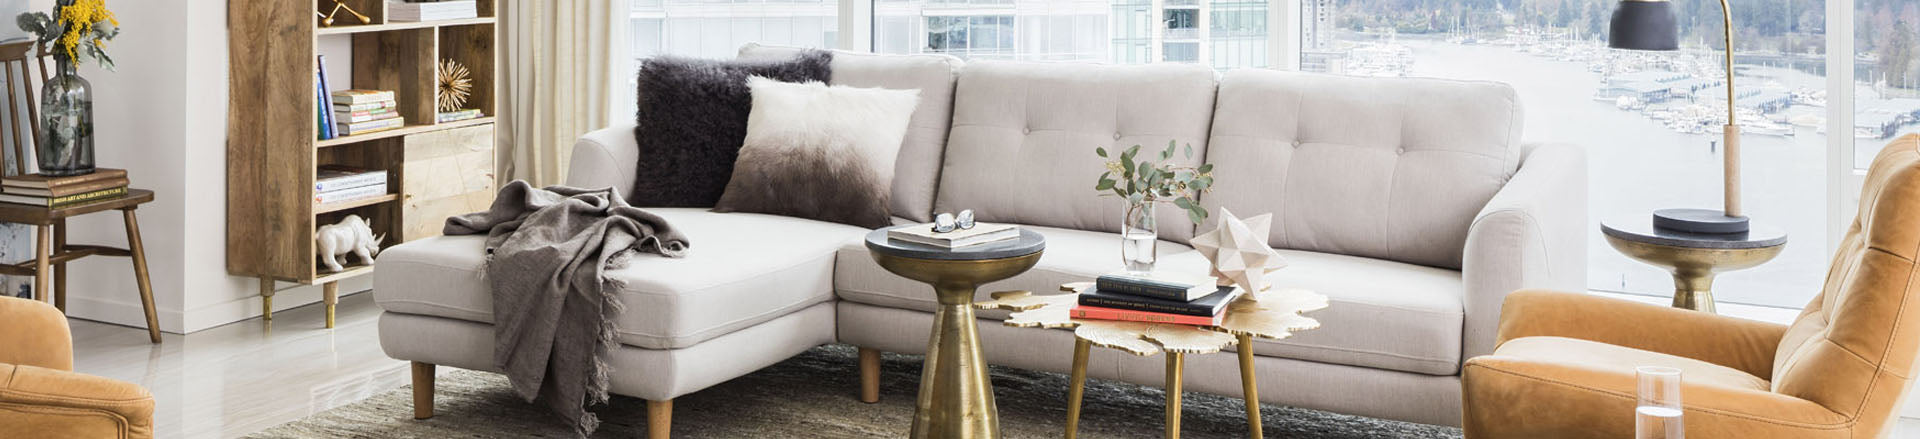 Magnificent 1 Custom Sectionals San Diego Custom Sofas Skylars Home Gmtry Best Dining Table And Chair Ideas Images Gmtryco